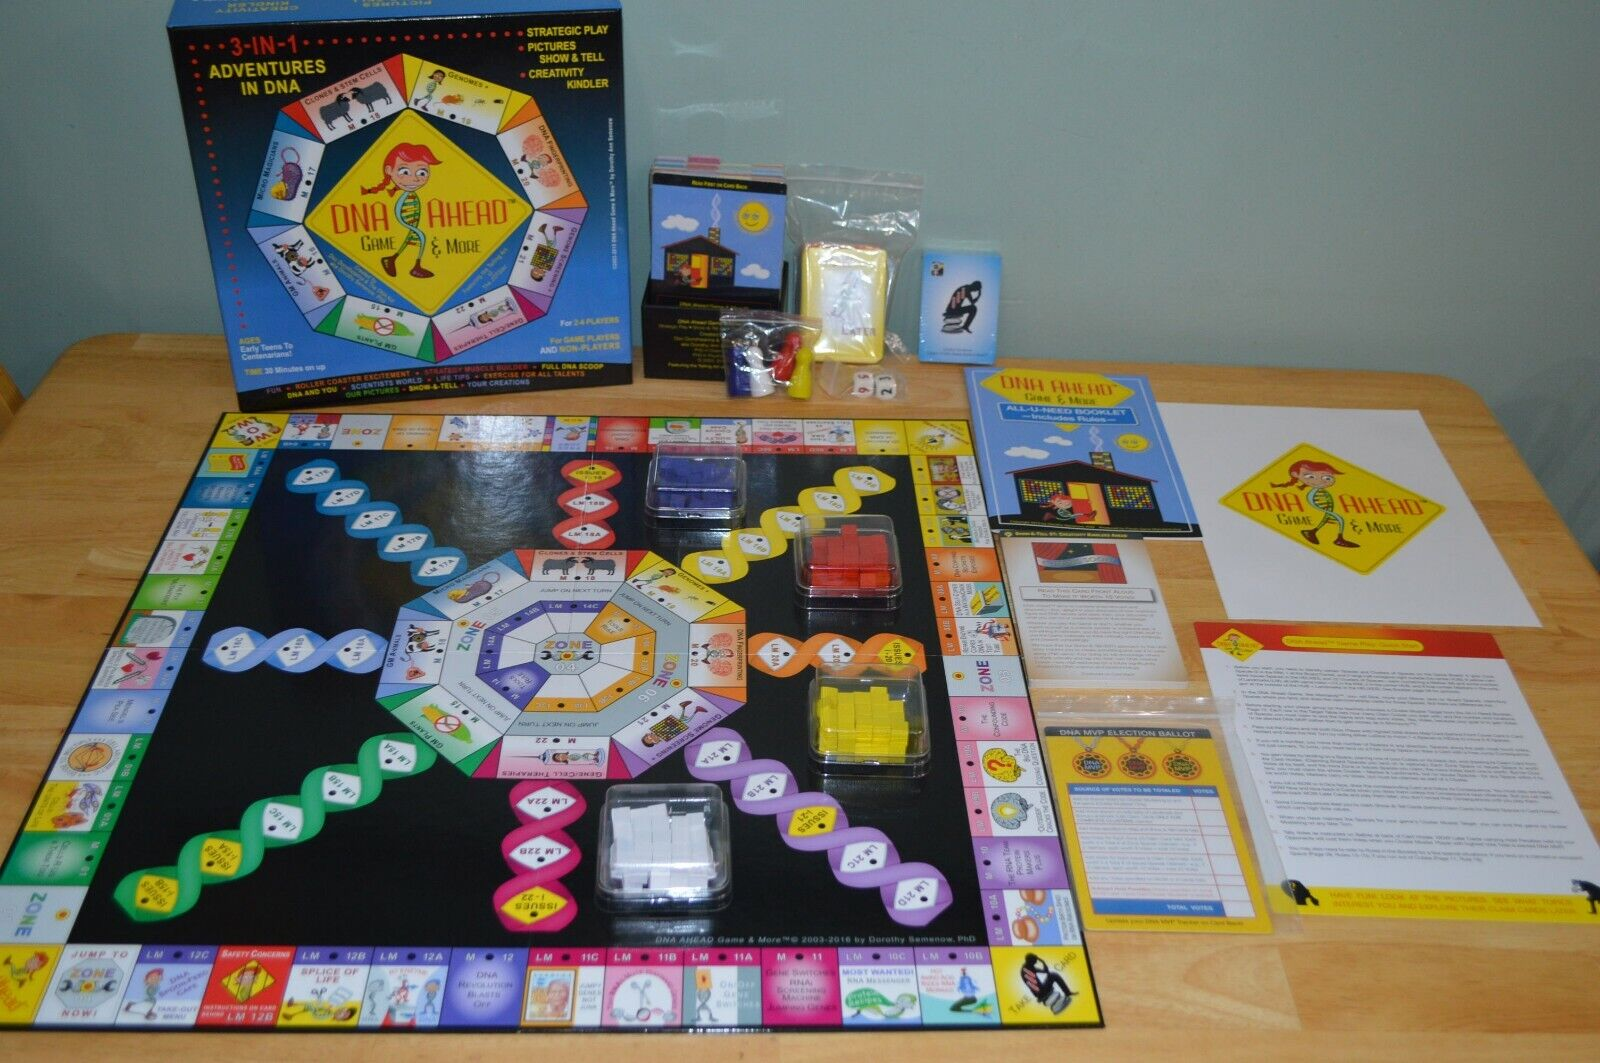 New Open Box DNA Ahead Game & More Board Game by Dgoldthy Semenow